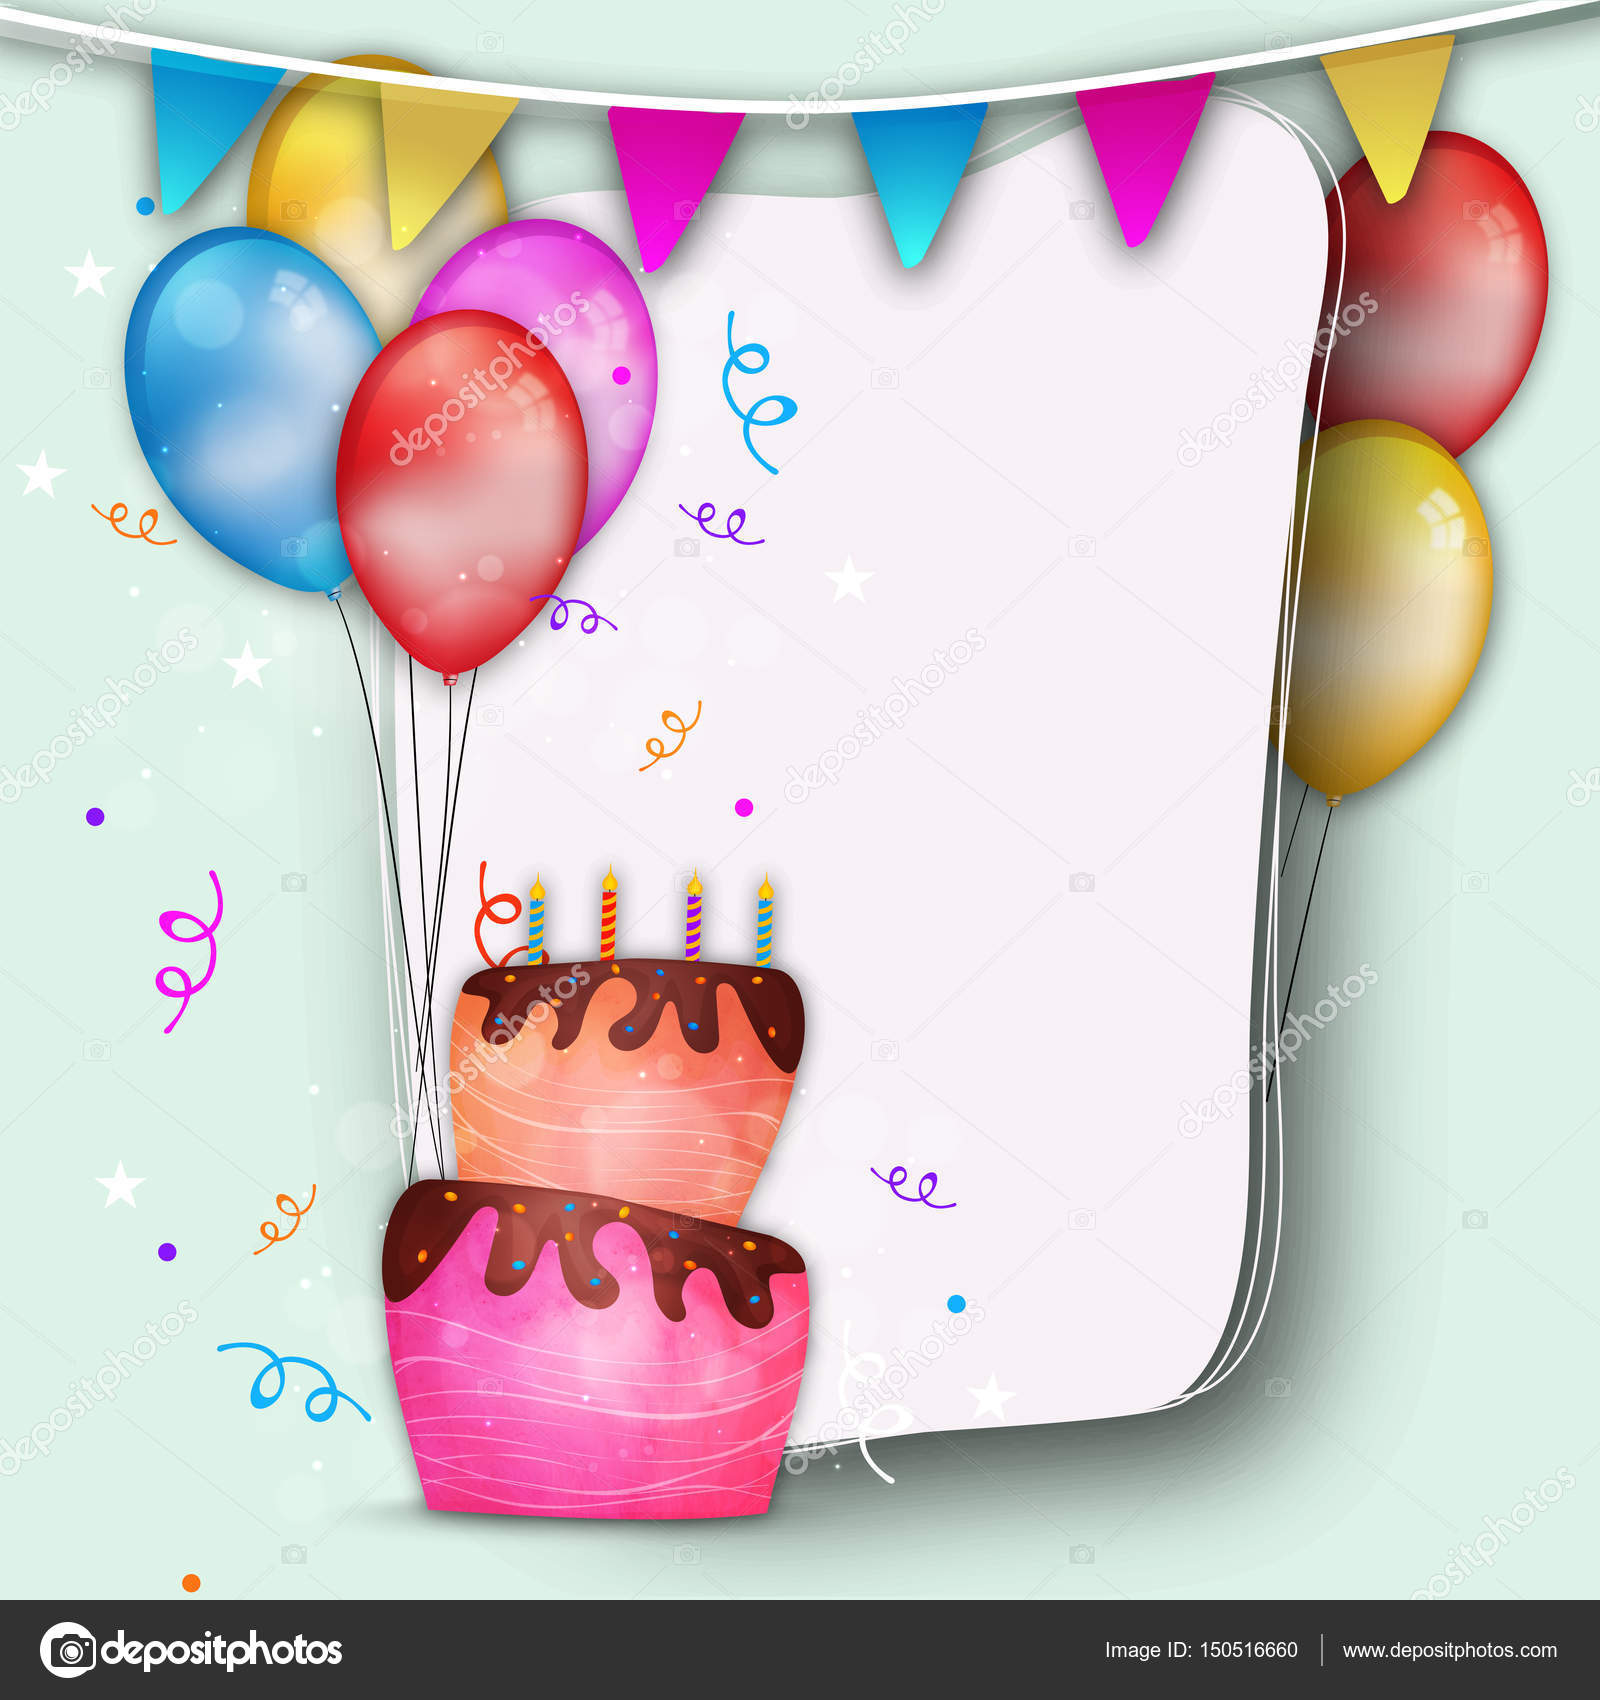 Happy birthday background with cake stock vector alliesinteract happy birthday background decorated with cake colorful balloons and buntings elegant greeting or invitation card design with space for your text stopboris Choice Image